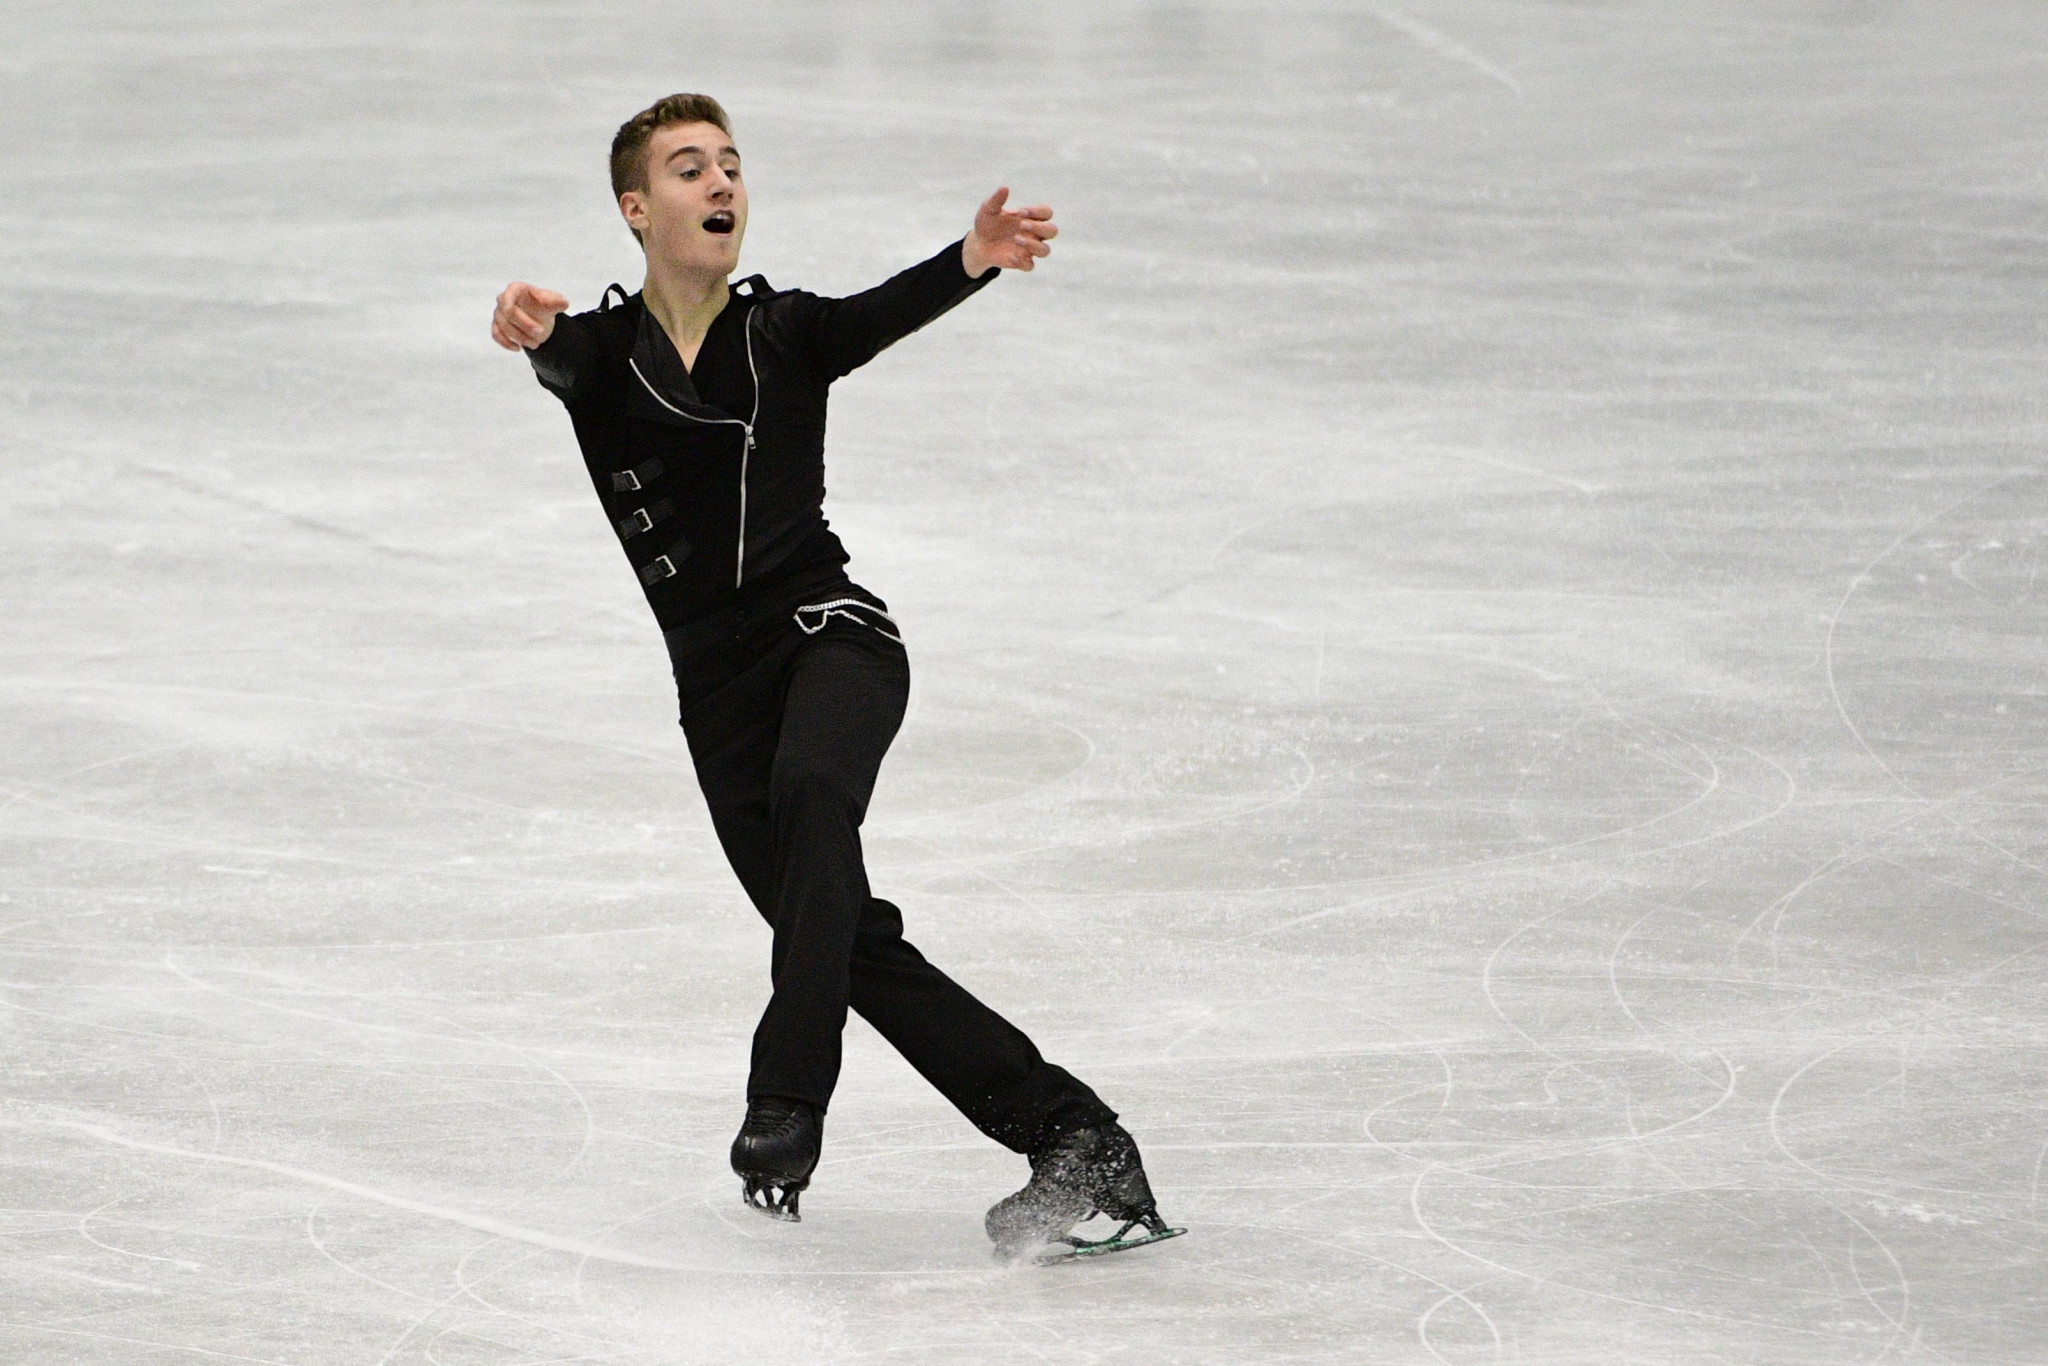 Italy's Rizzo wins men's figure skating to prevent clean sweep for Russia at Krasnoyarsk 2019